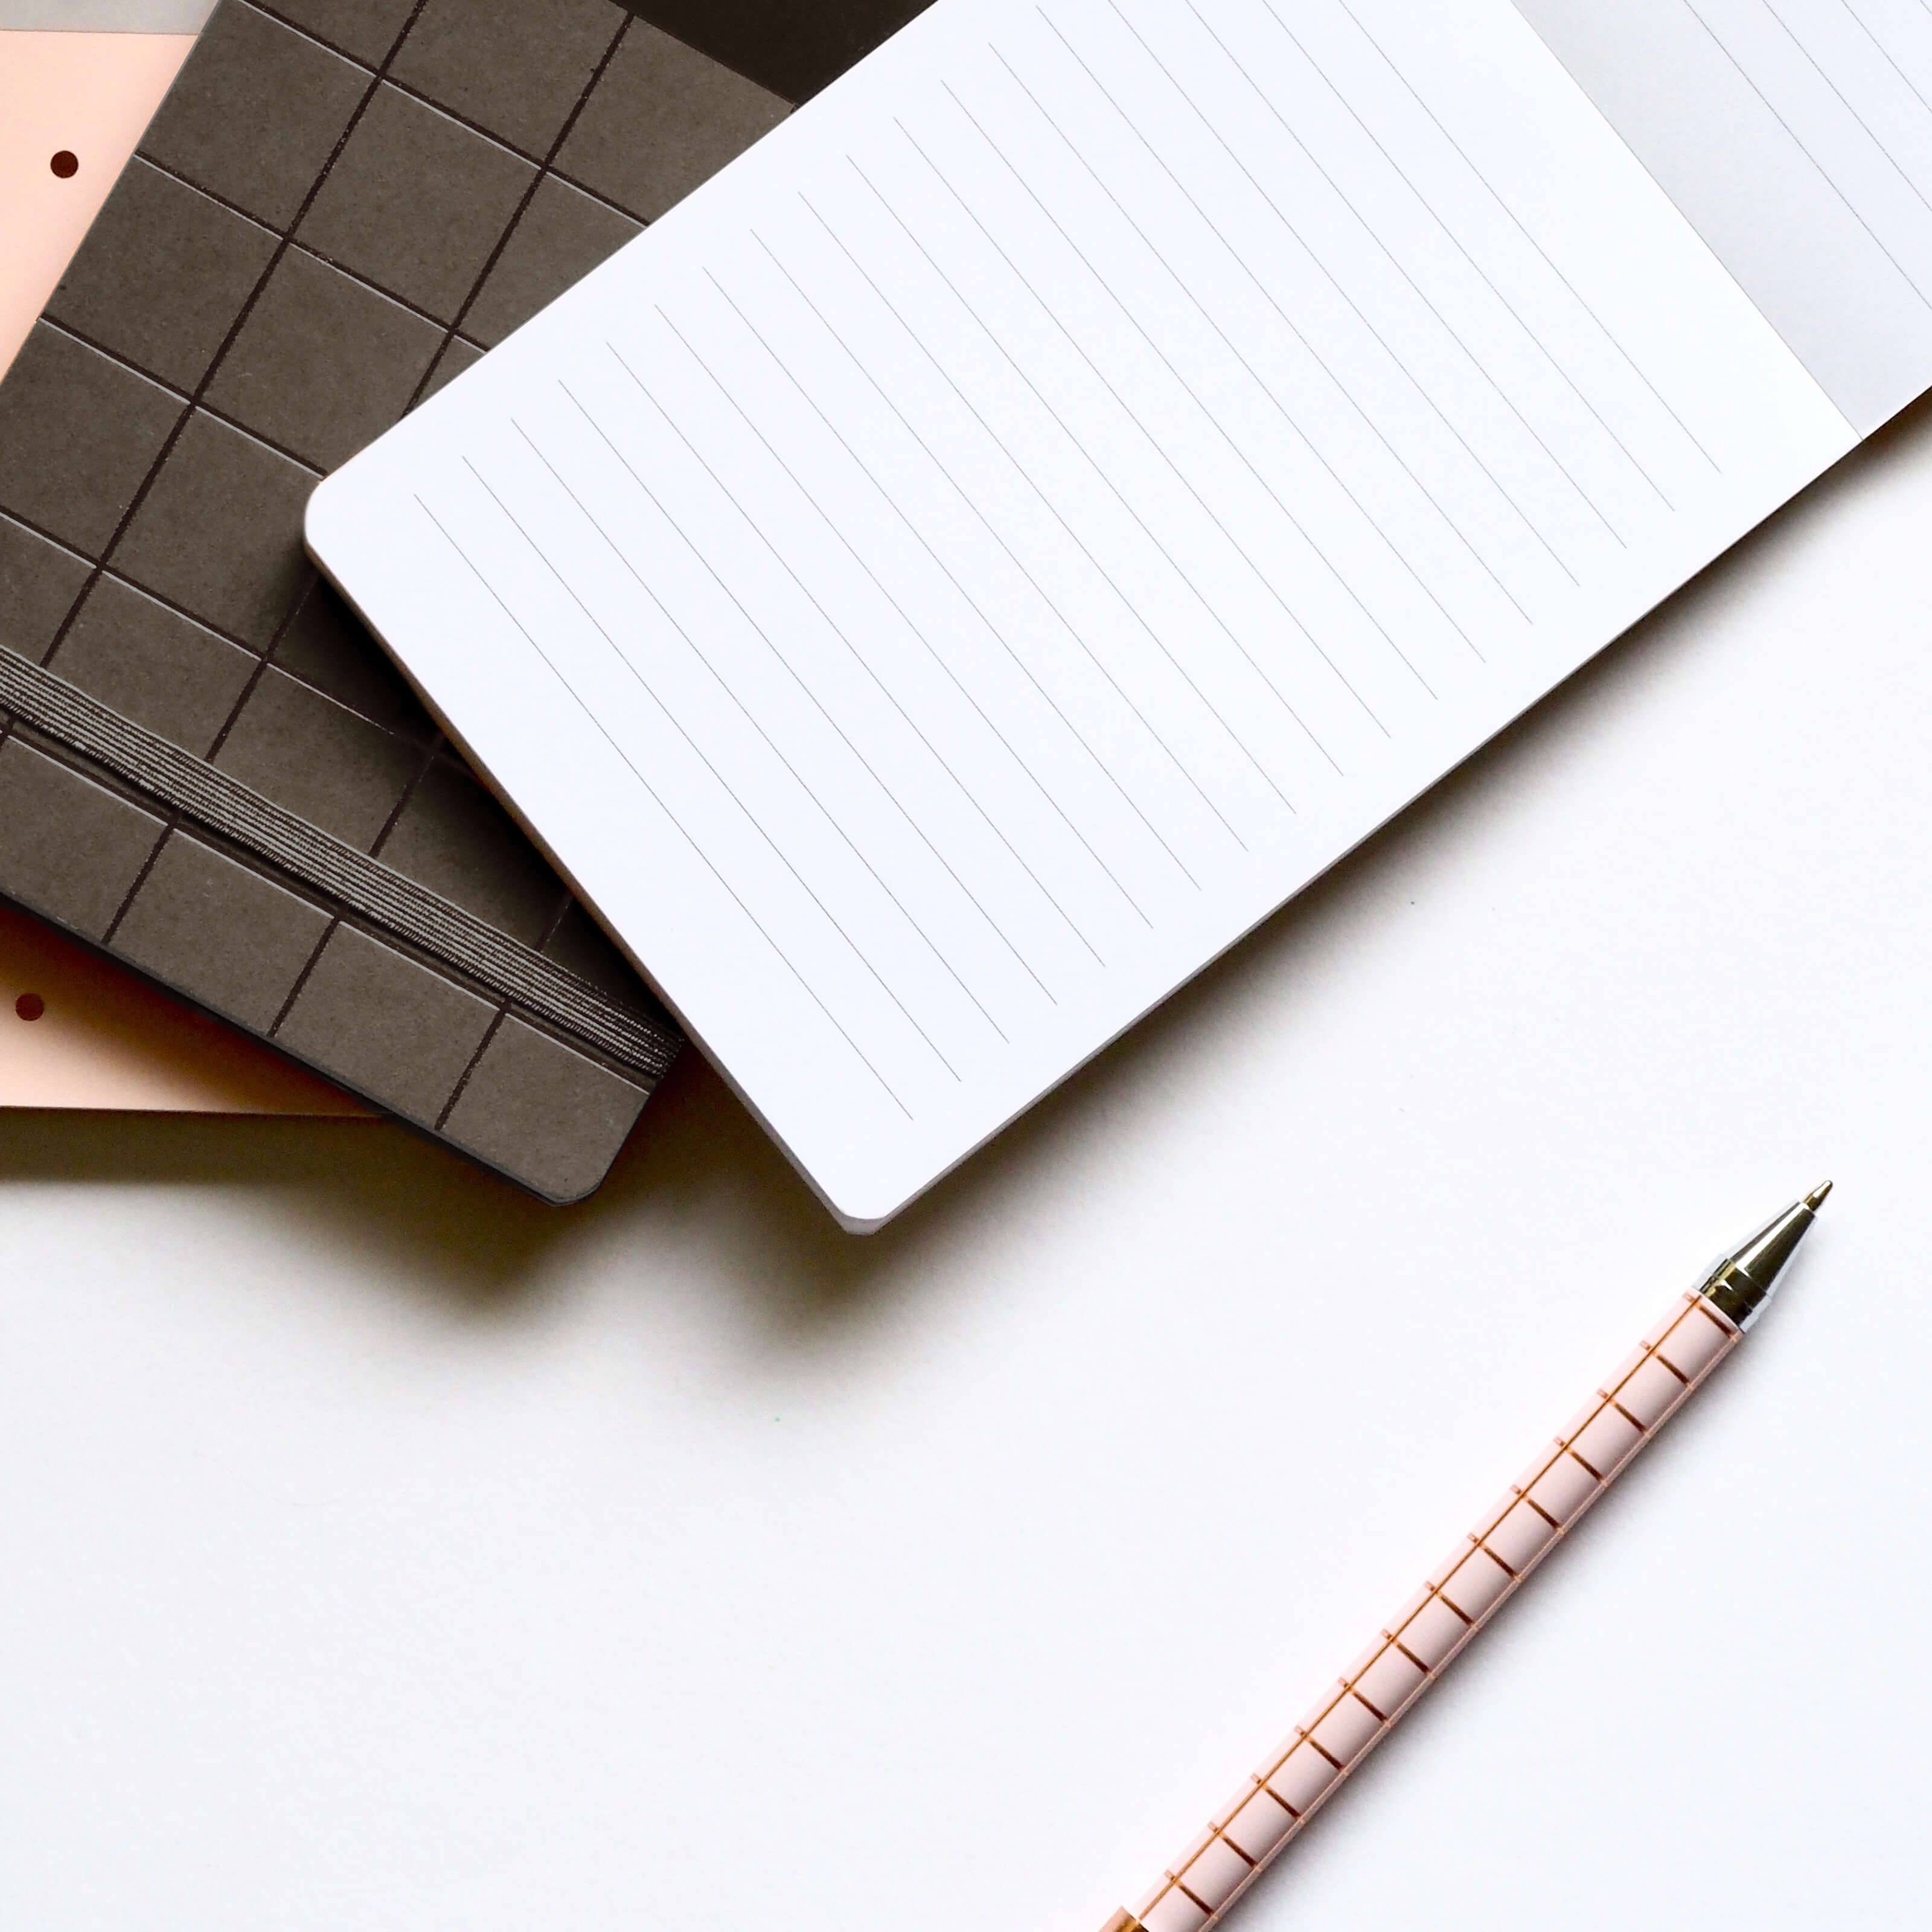 notebooks on desk blank page pink pen thumbnail image